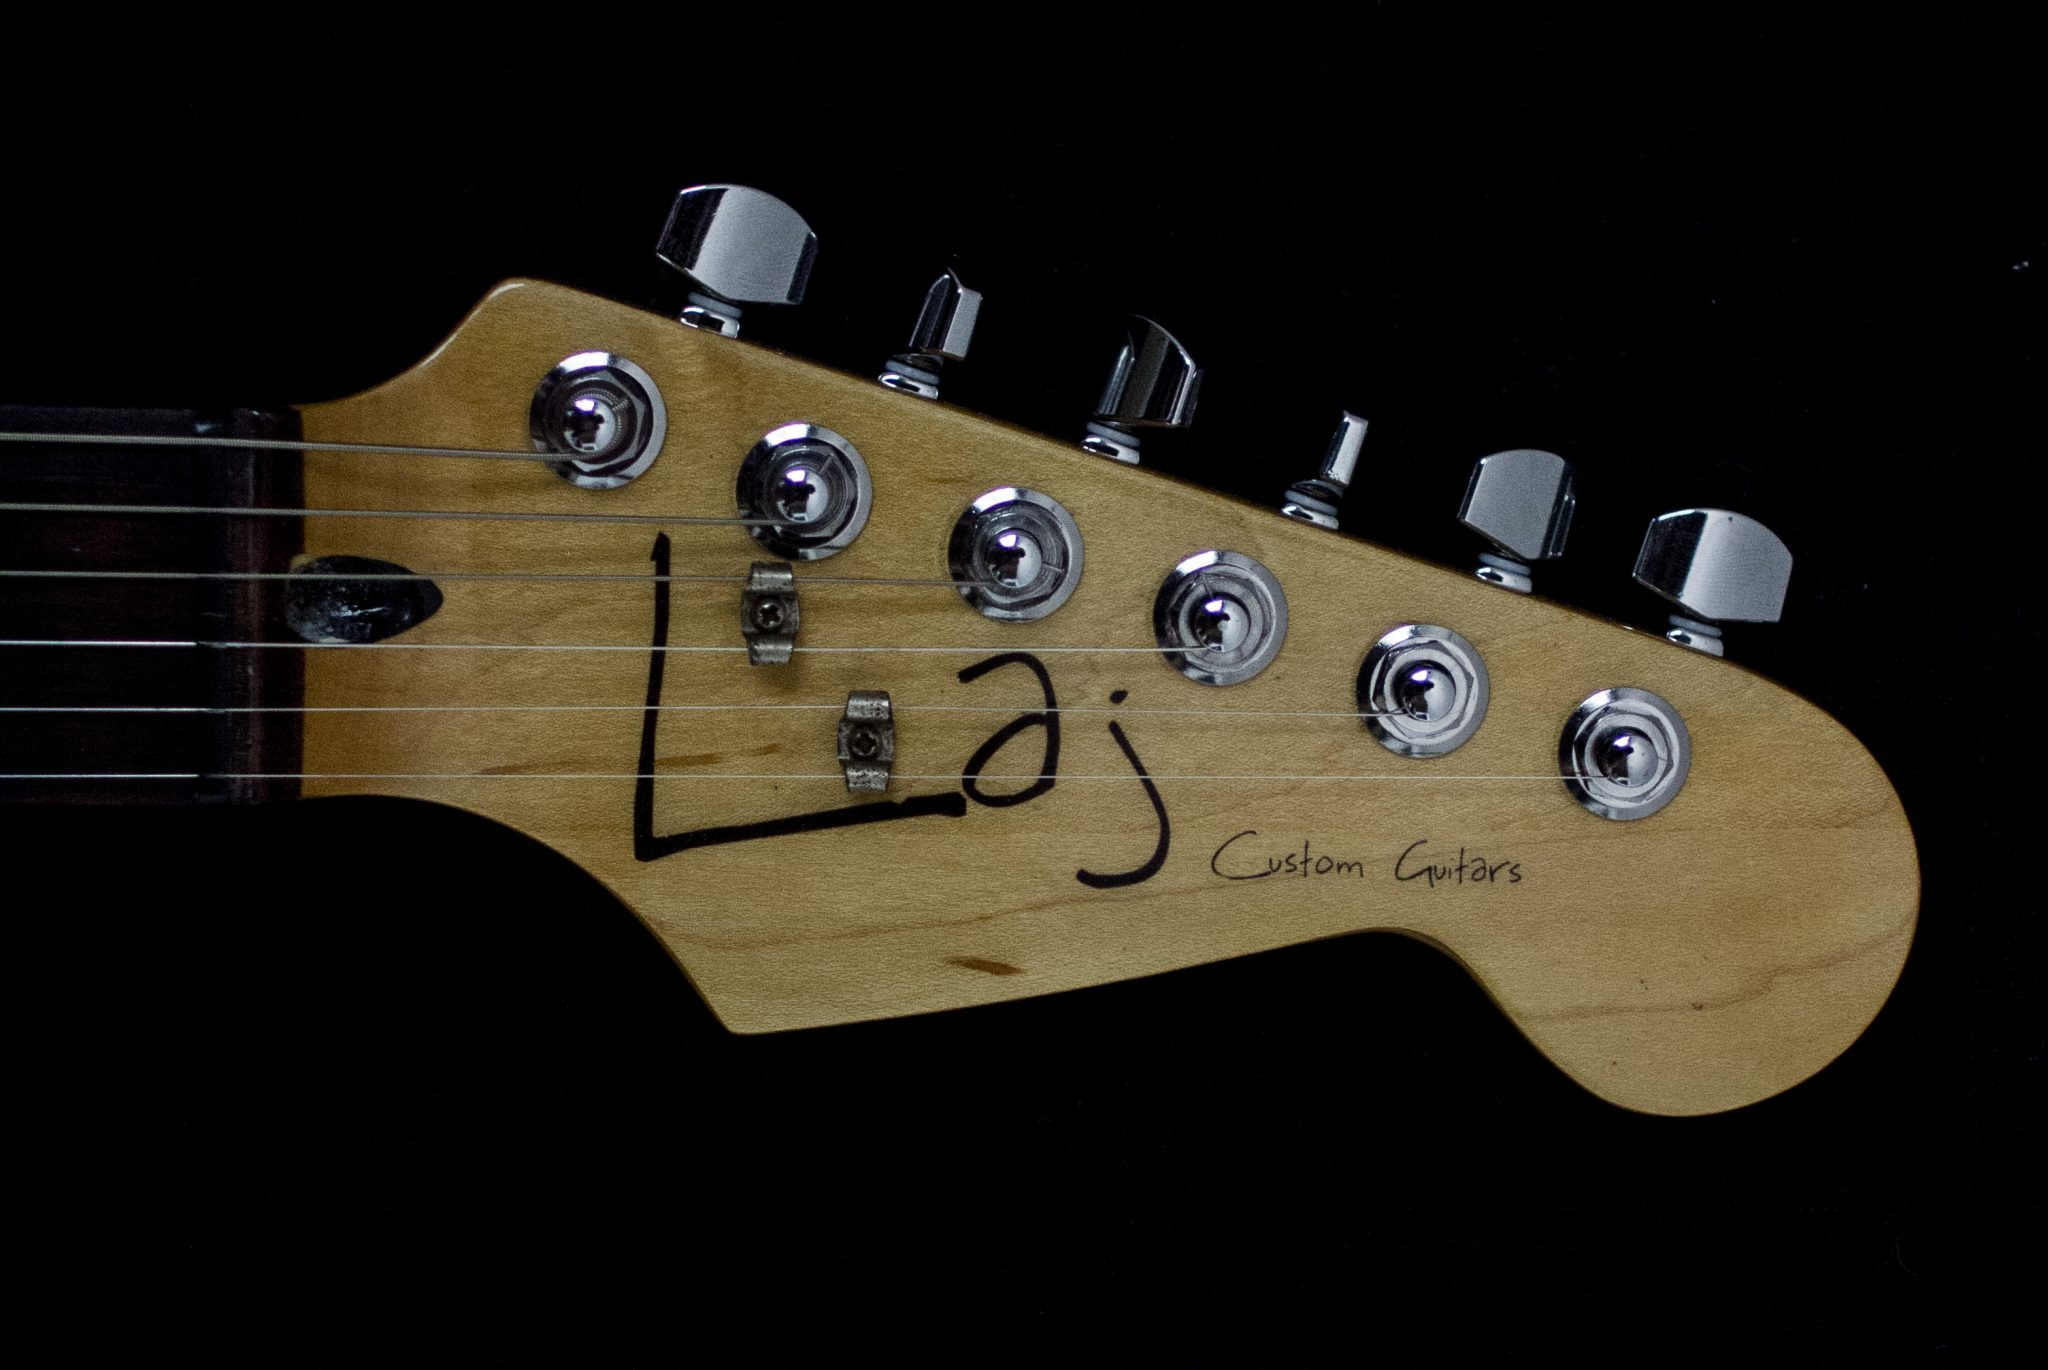 IMG 1845 - Laj Custom Guitars Strat Blue